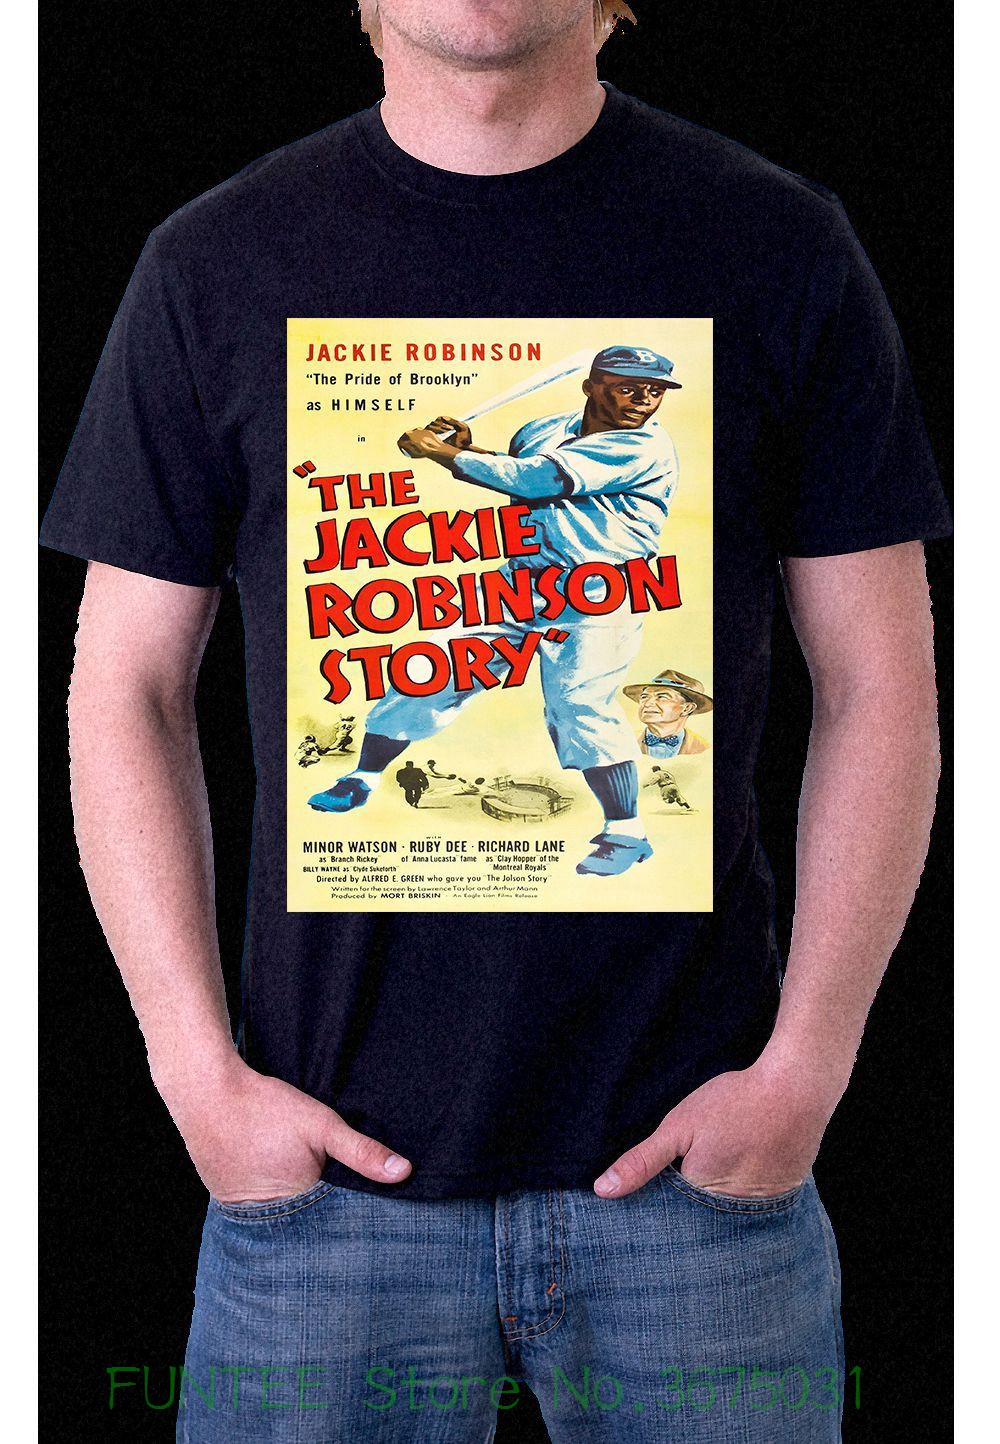 Print T Shirt Summer Style Hot The Jackie Robinson Story Baseball Black T-shirt S M L Xl Xxl Xxxl image